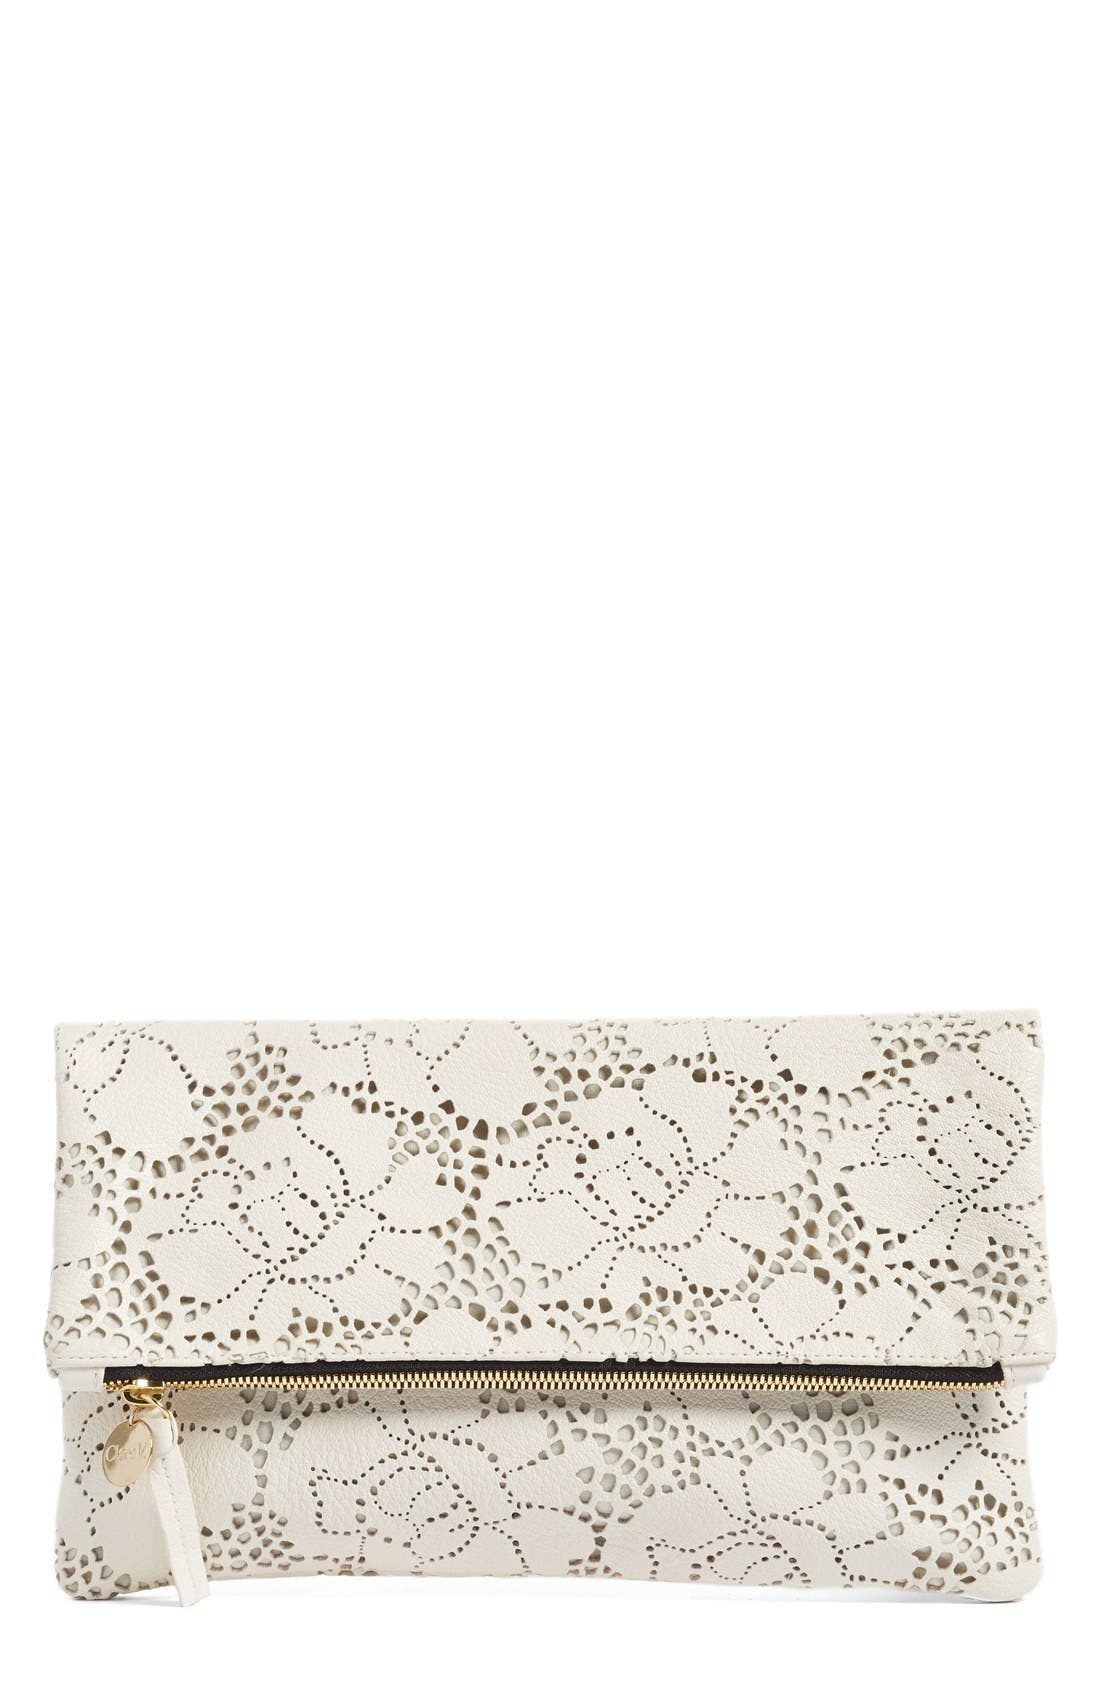 Alternate Image 1 Selected - Clare V. Leather Lace Foldover Clutch